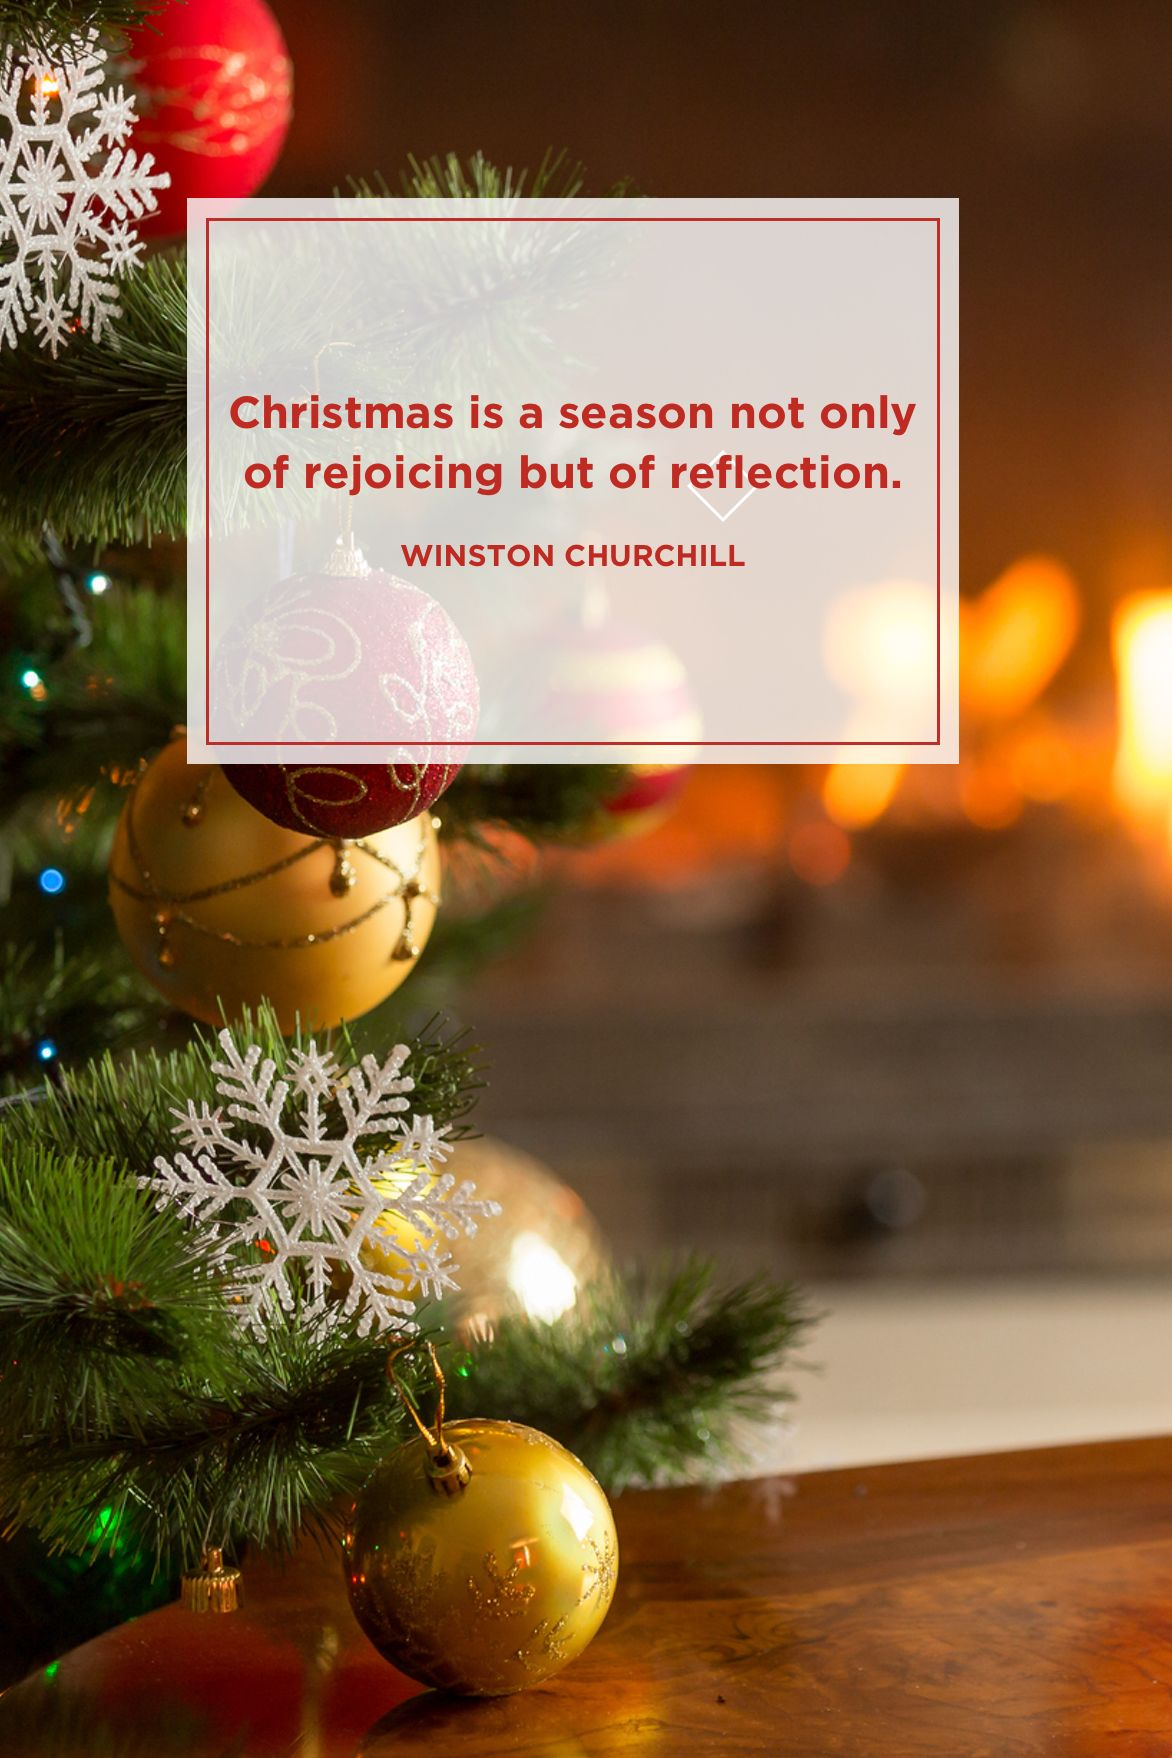 5 Best Christmas Quotes - Most Inspiring & Festive Holiday Sayings